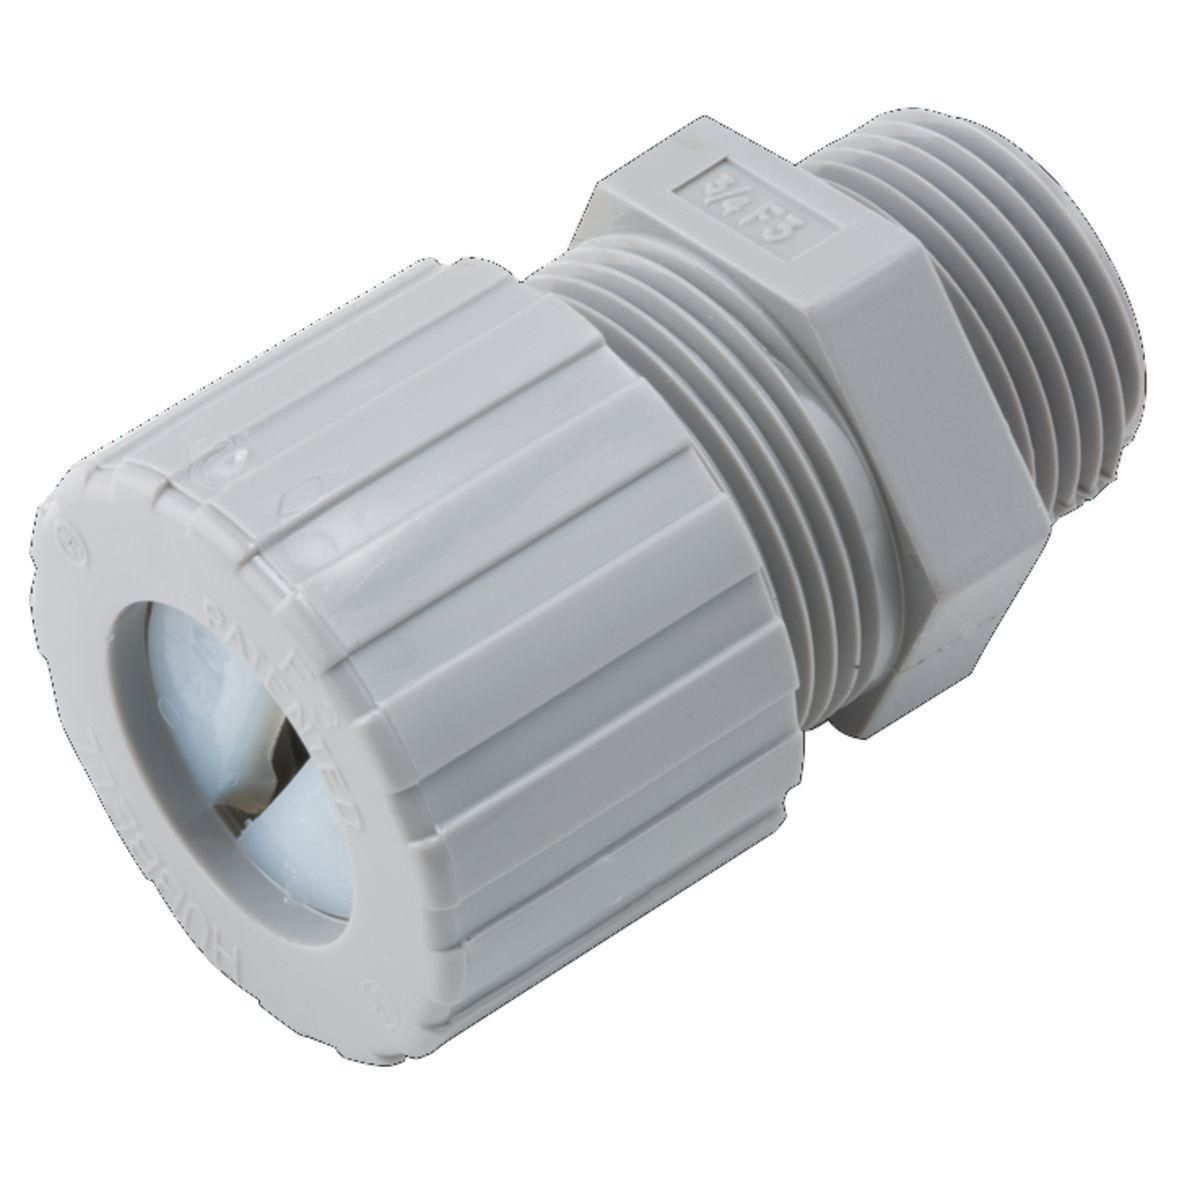 CONNECTOR UF LQTGHT 1/2 IN NYLON